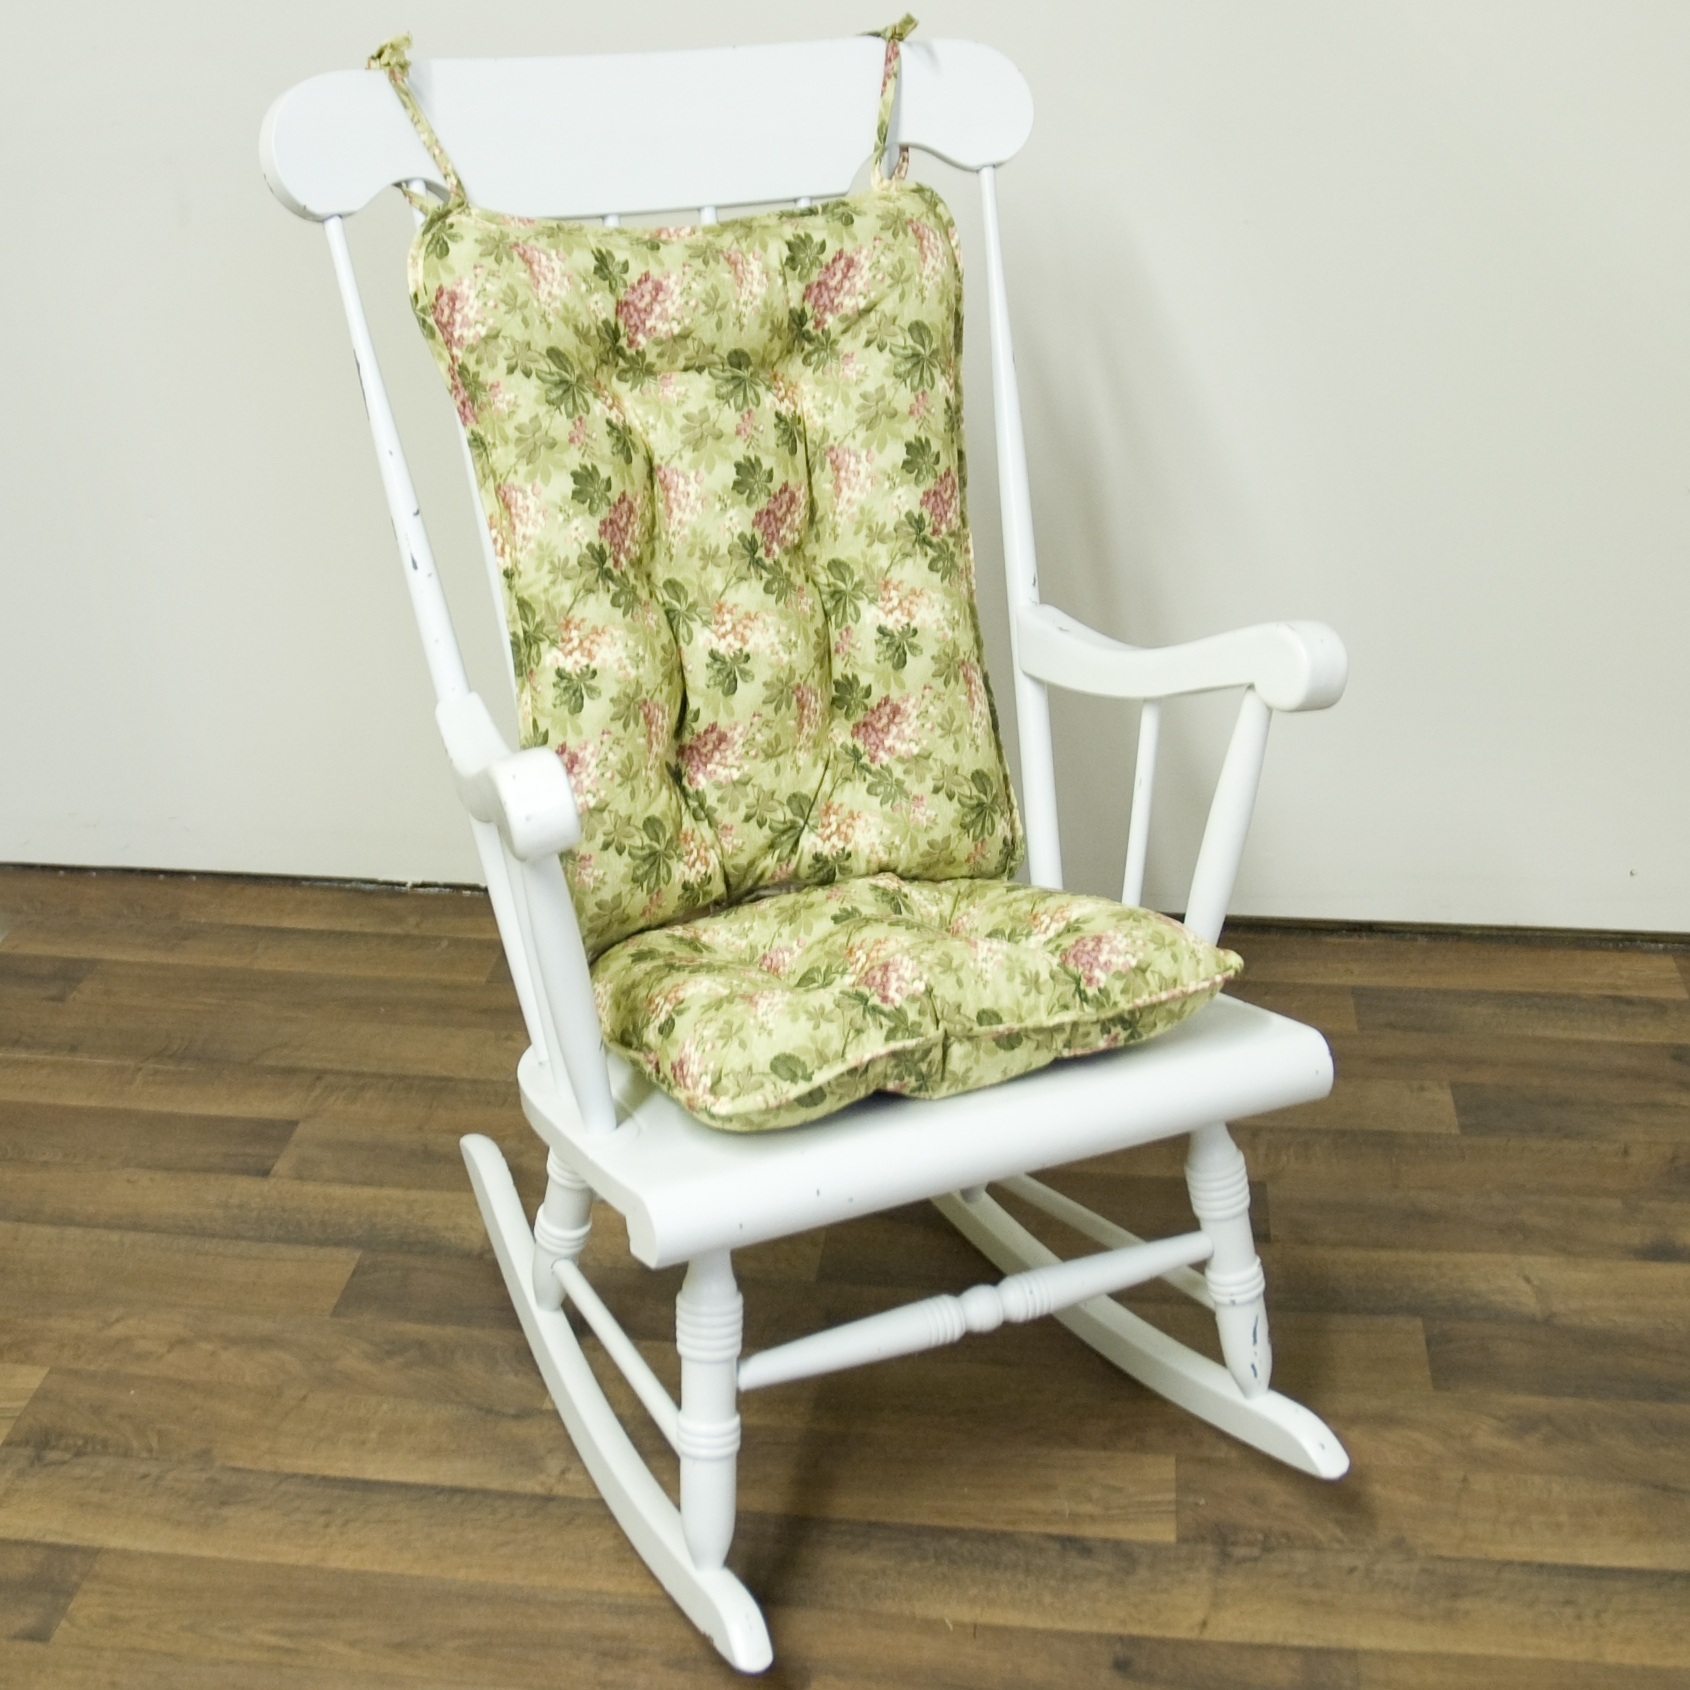 Outdoor Rocking Chair Cushions Flower : Beautiful Outdoor Rocking Inside Most Popular Yellow Outdoor Rocking Chairs (View 16 of 20)